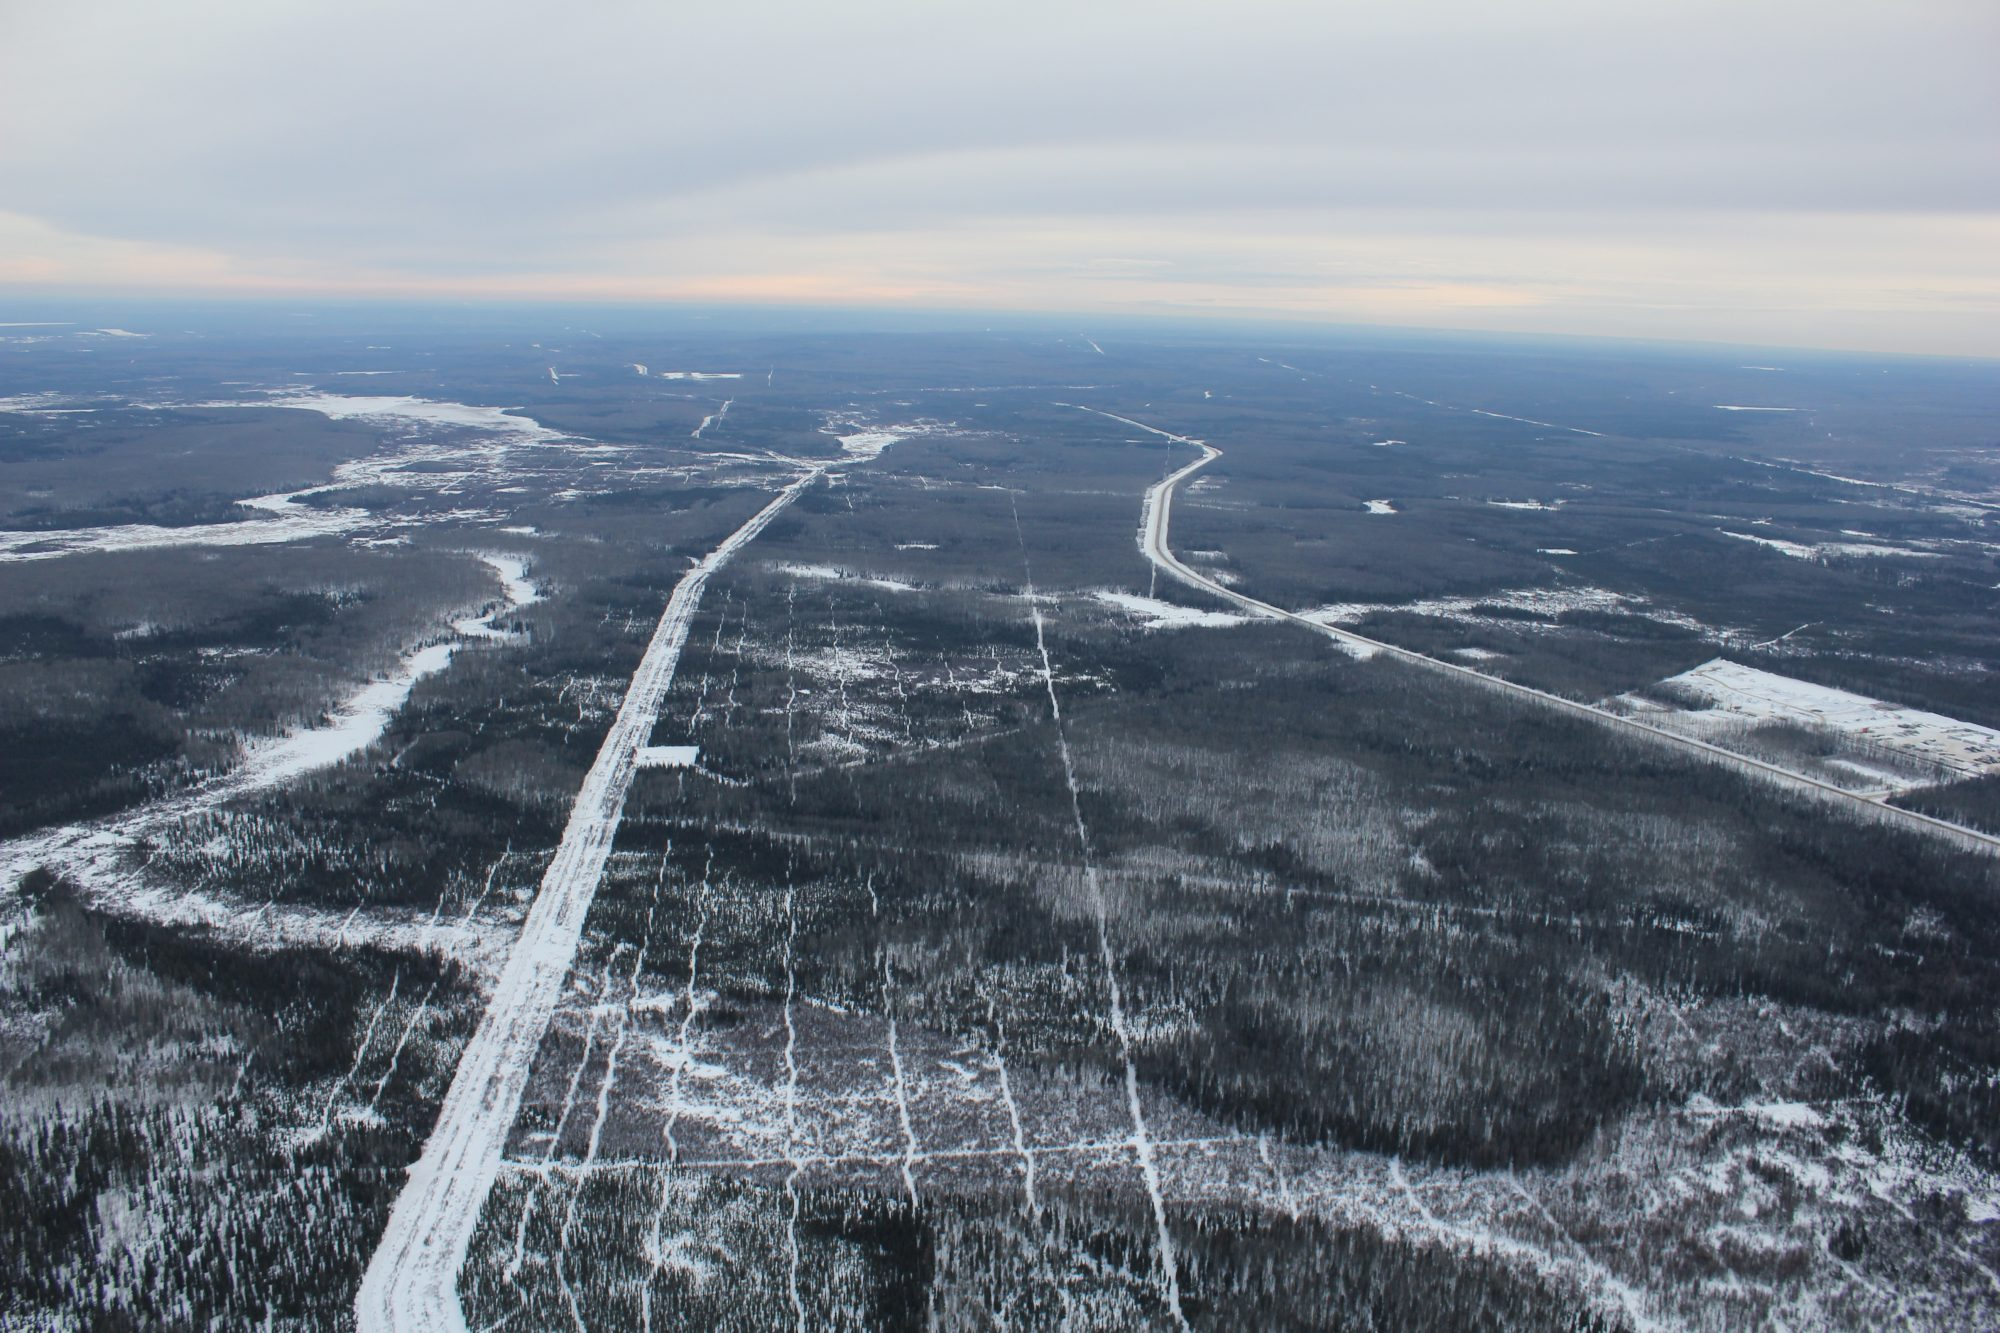 Aerial view of Stony 800 study area landscape in winter